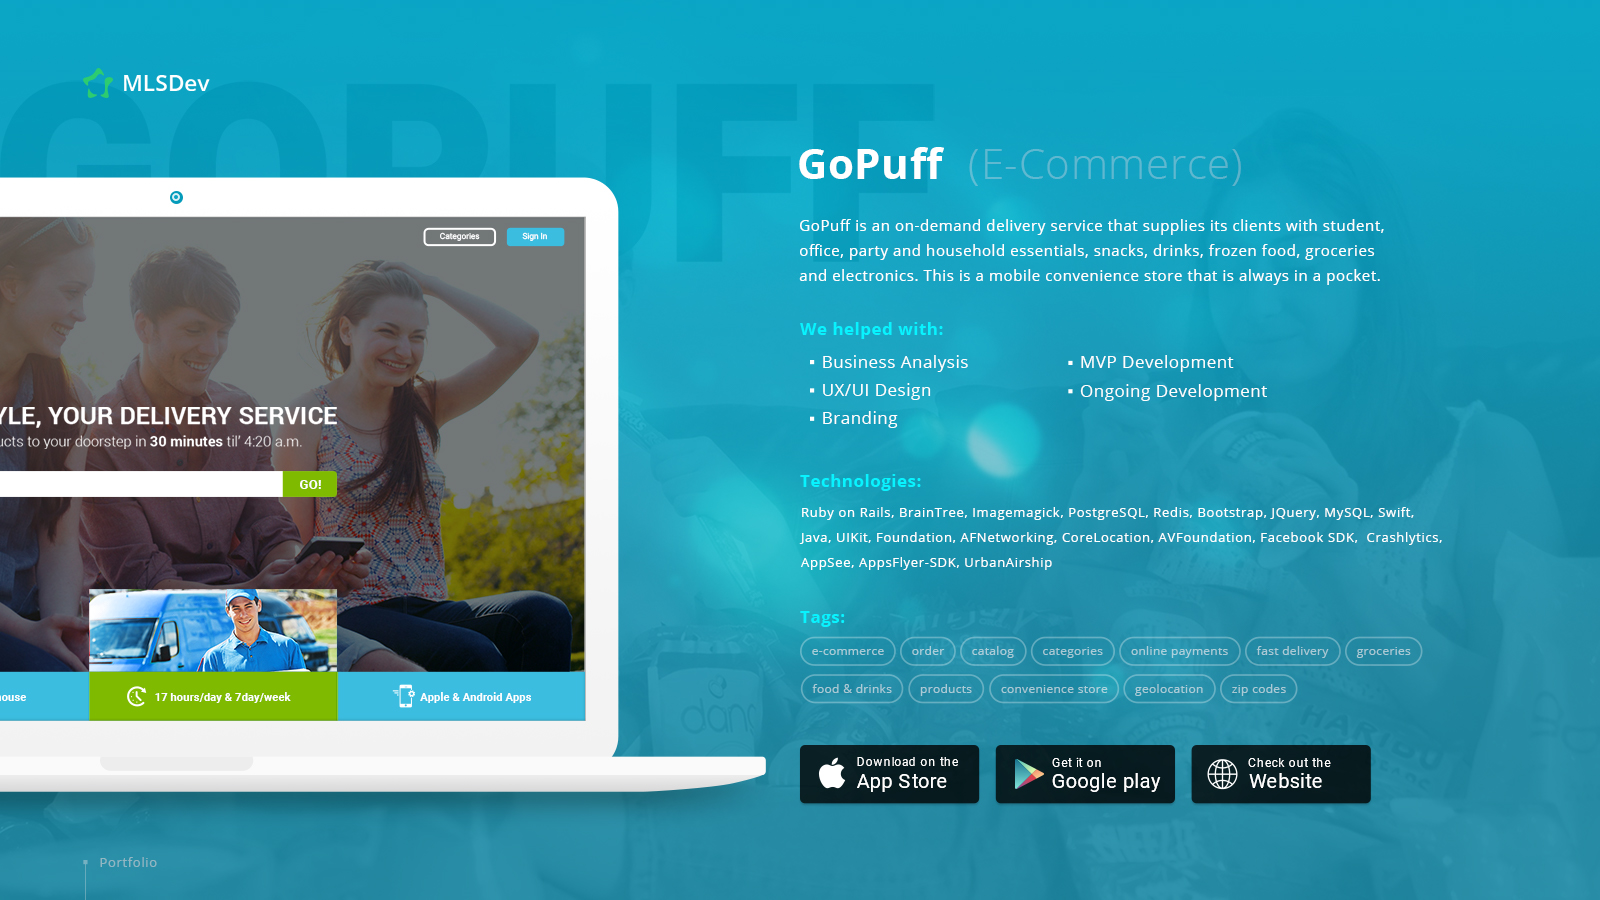 GoPuff: On-demand Delivery Service in the USA